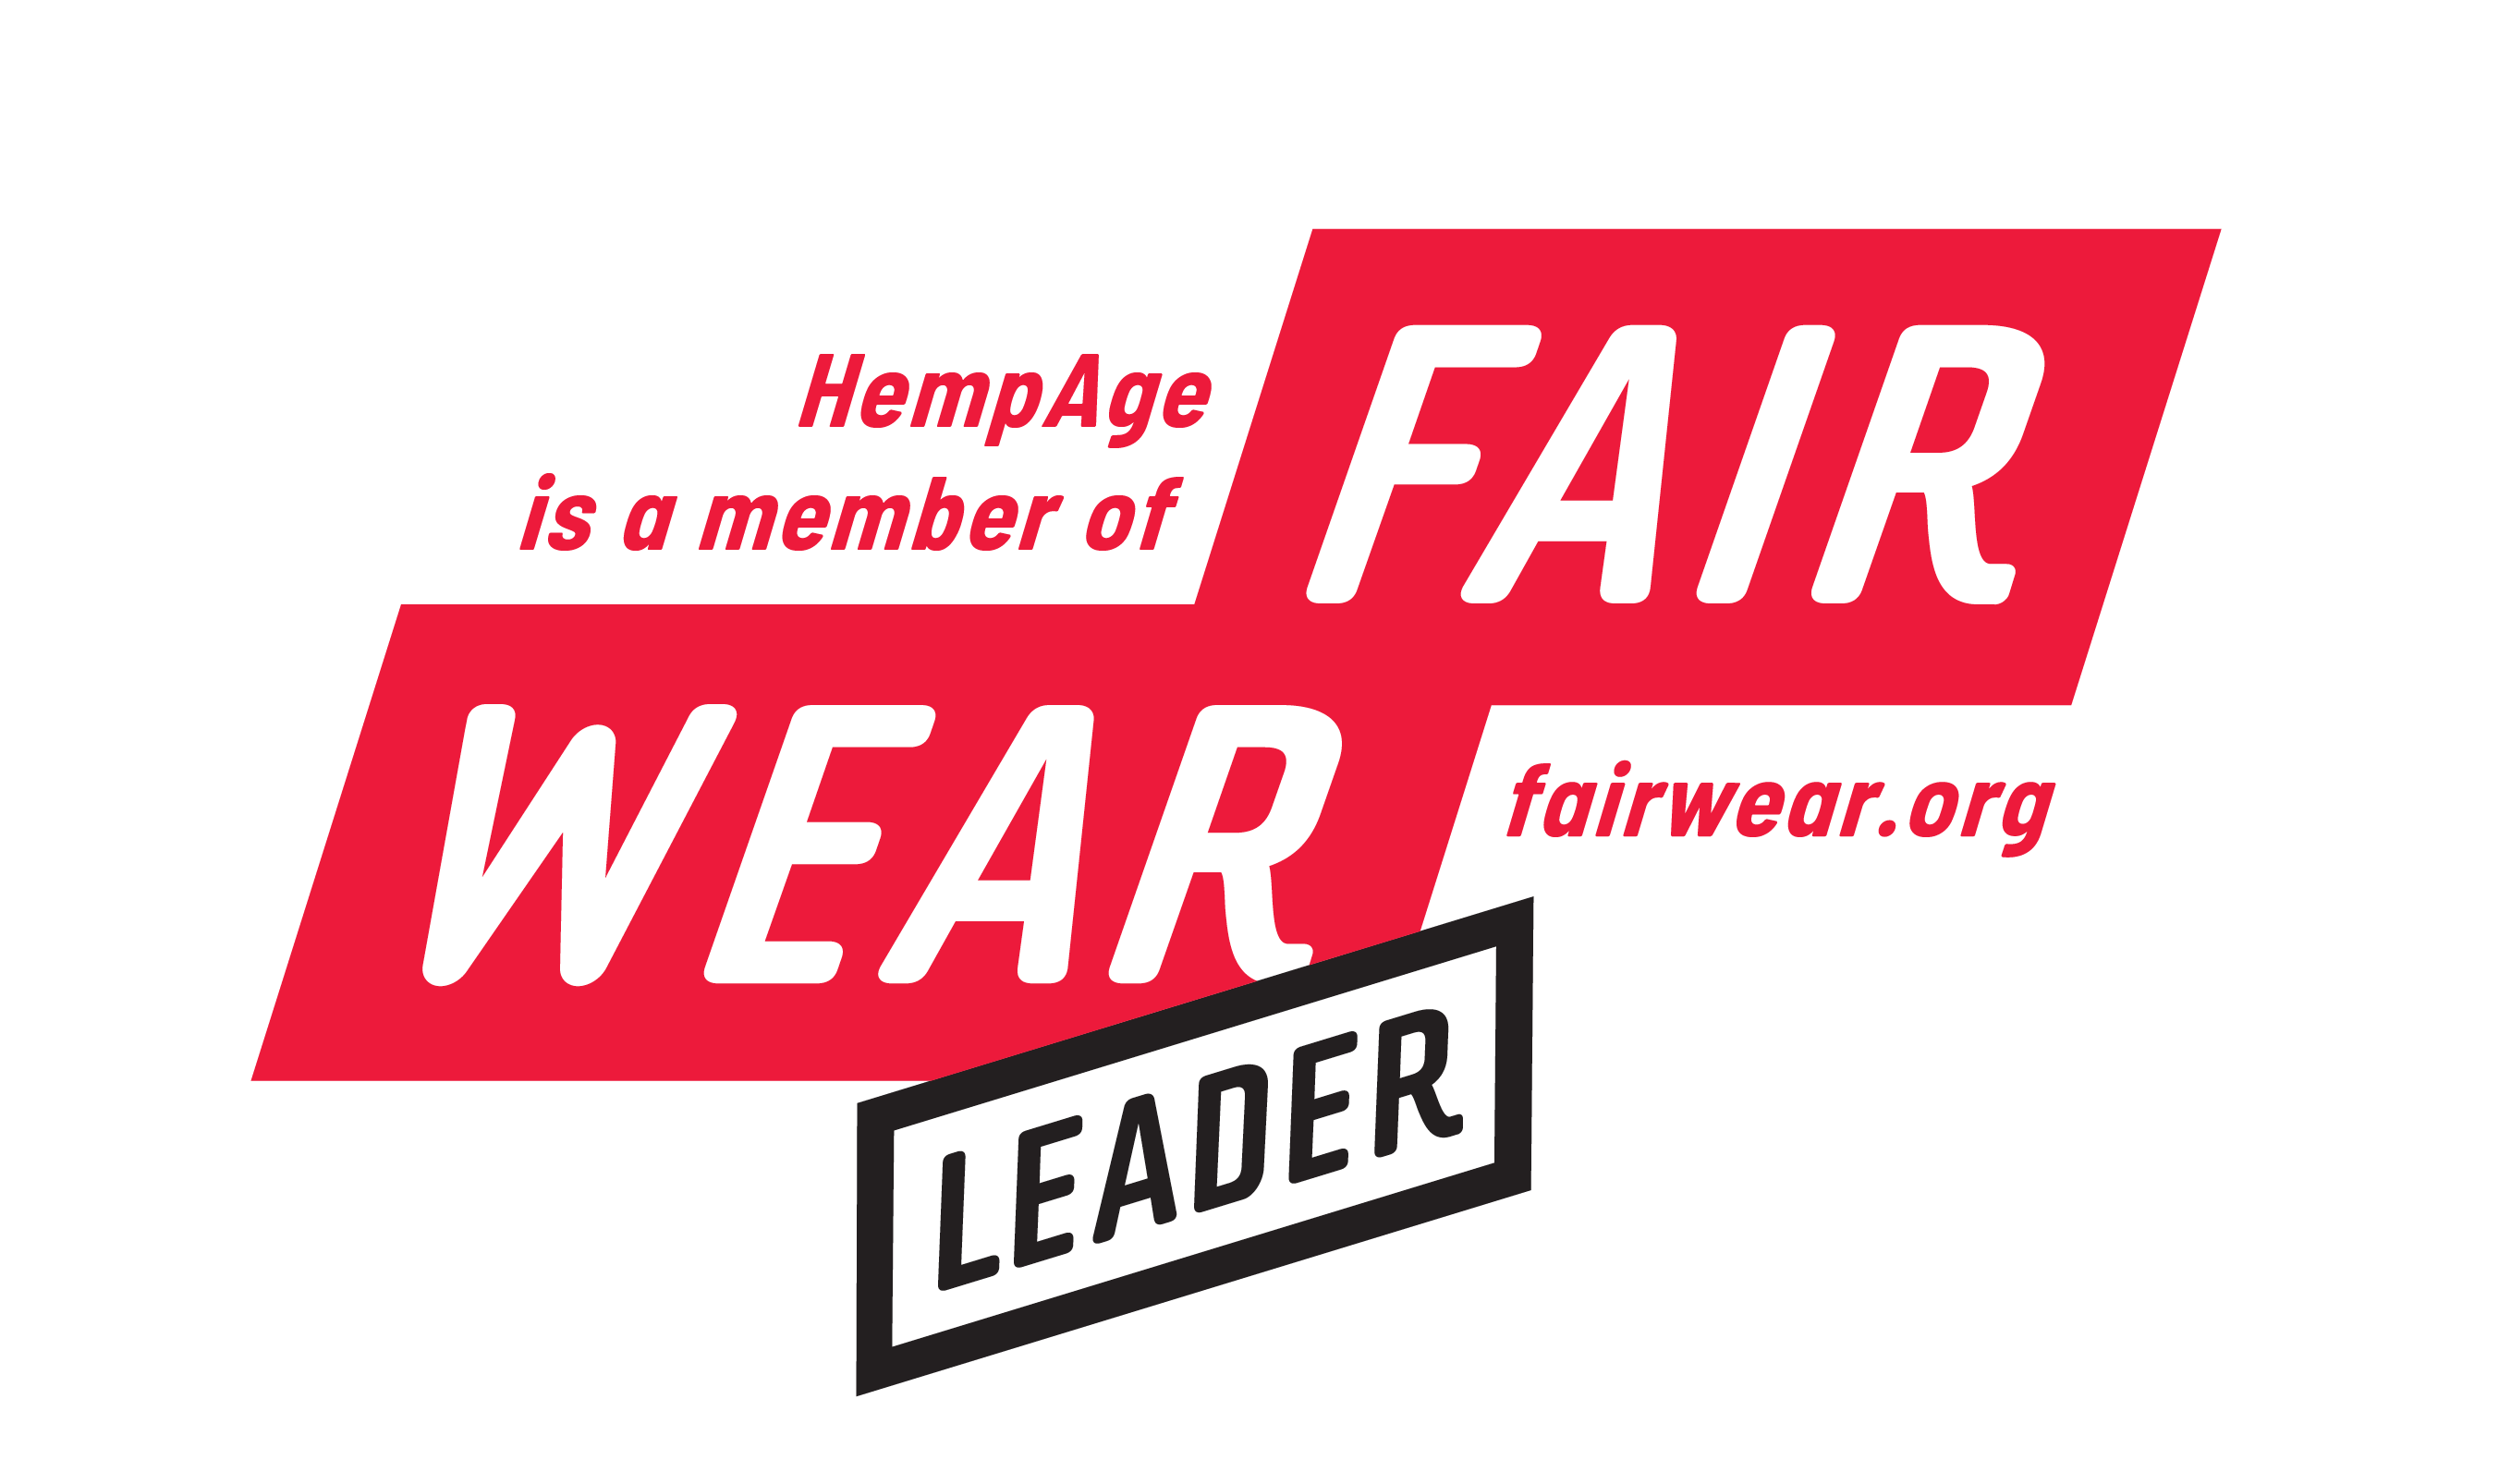 Fair Wear member logo template